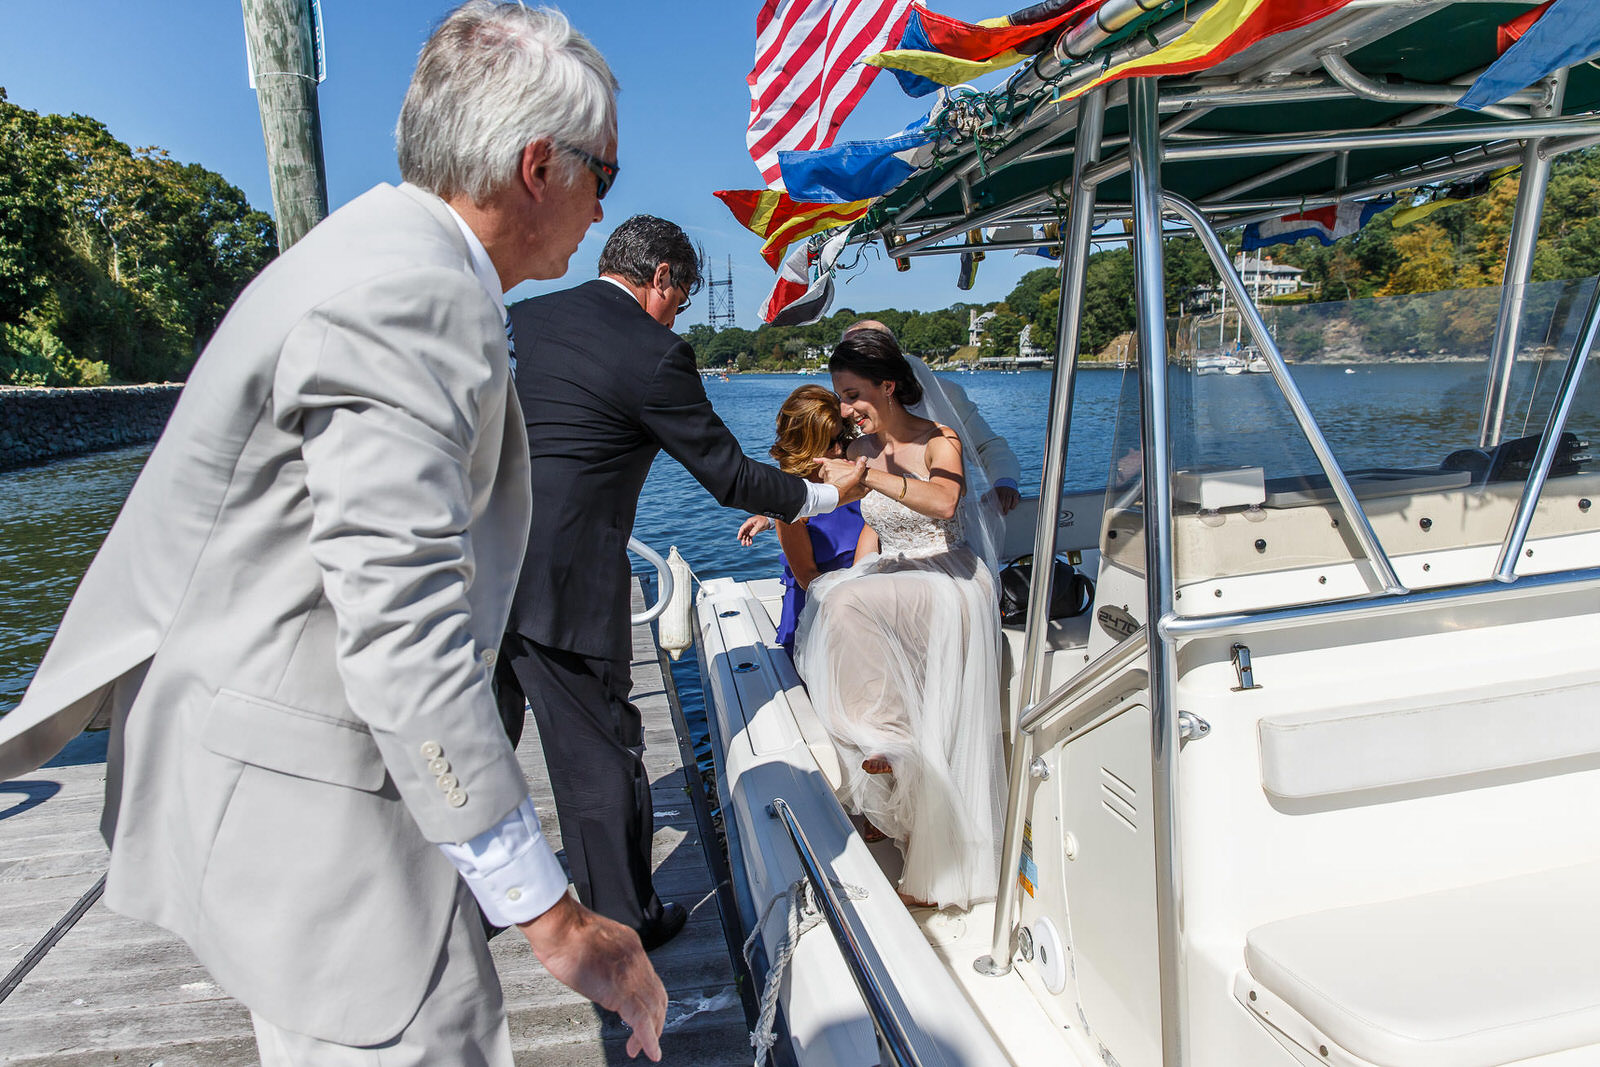 Riverboat Wedding Entrance by Westport Photographer David Butler II